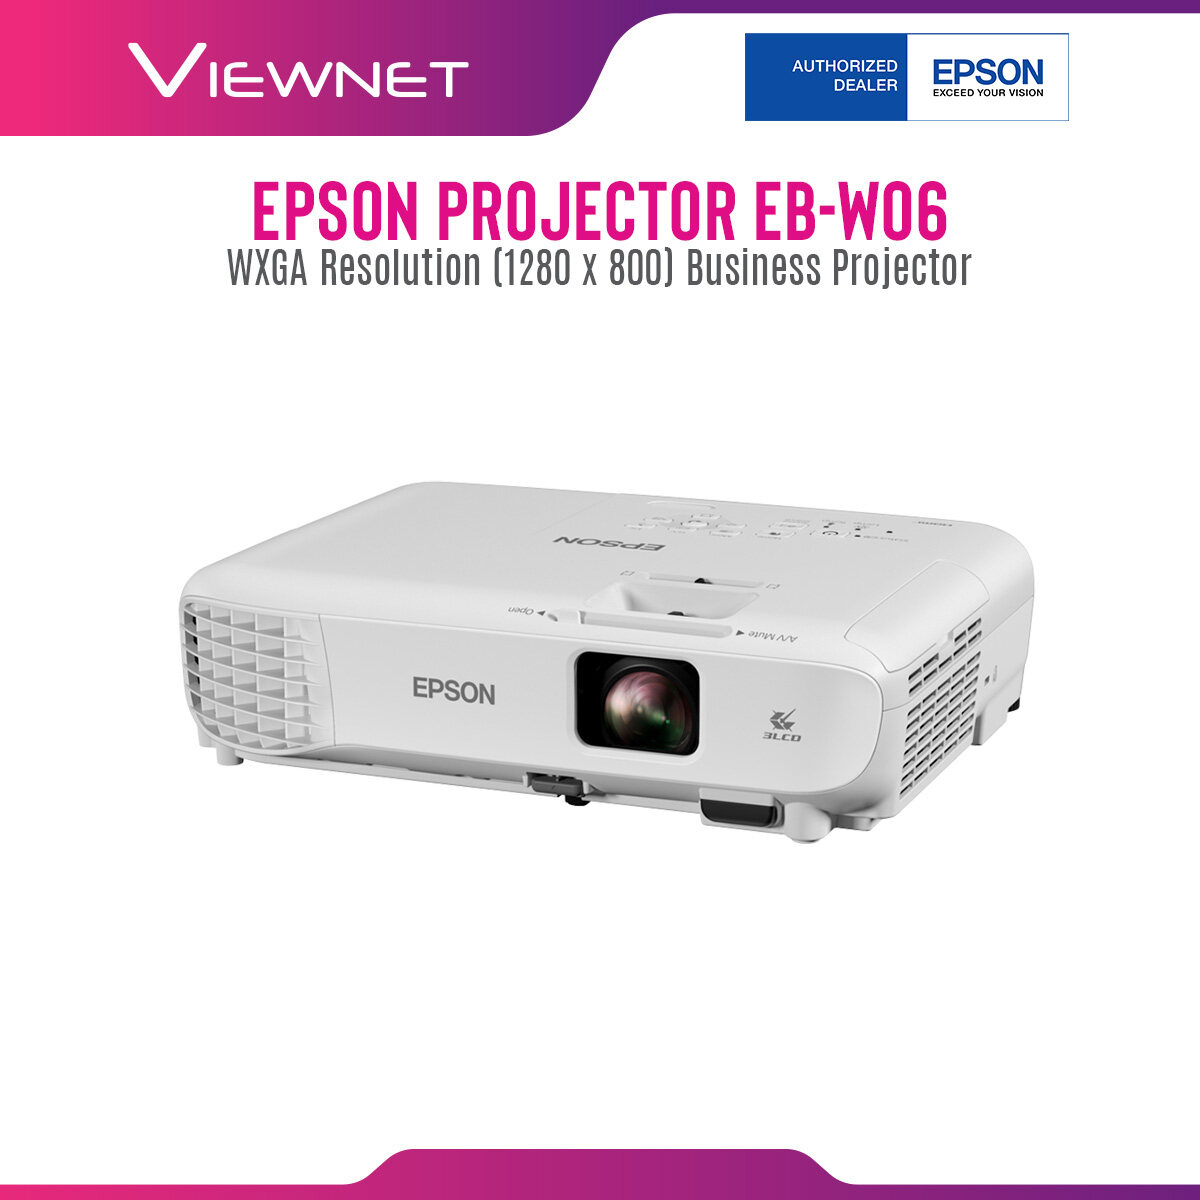 Epson Projector EB-W06 with WXGA Resolution (1280 x 800), 3700 Lumens, 12000 Hours Lamp Life in Eco Mode